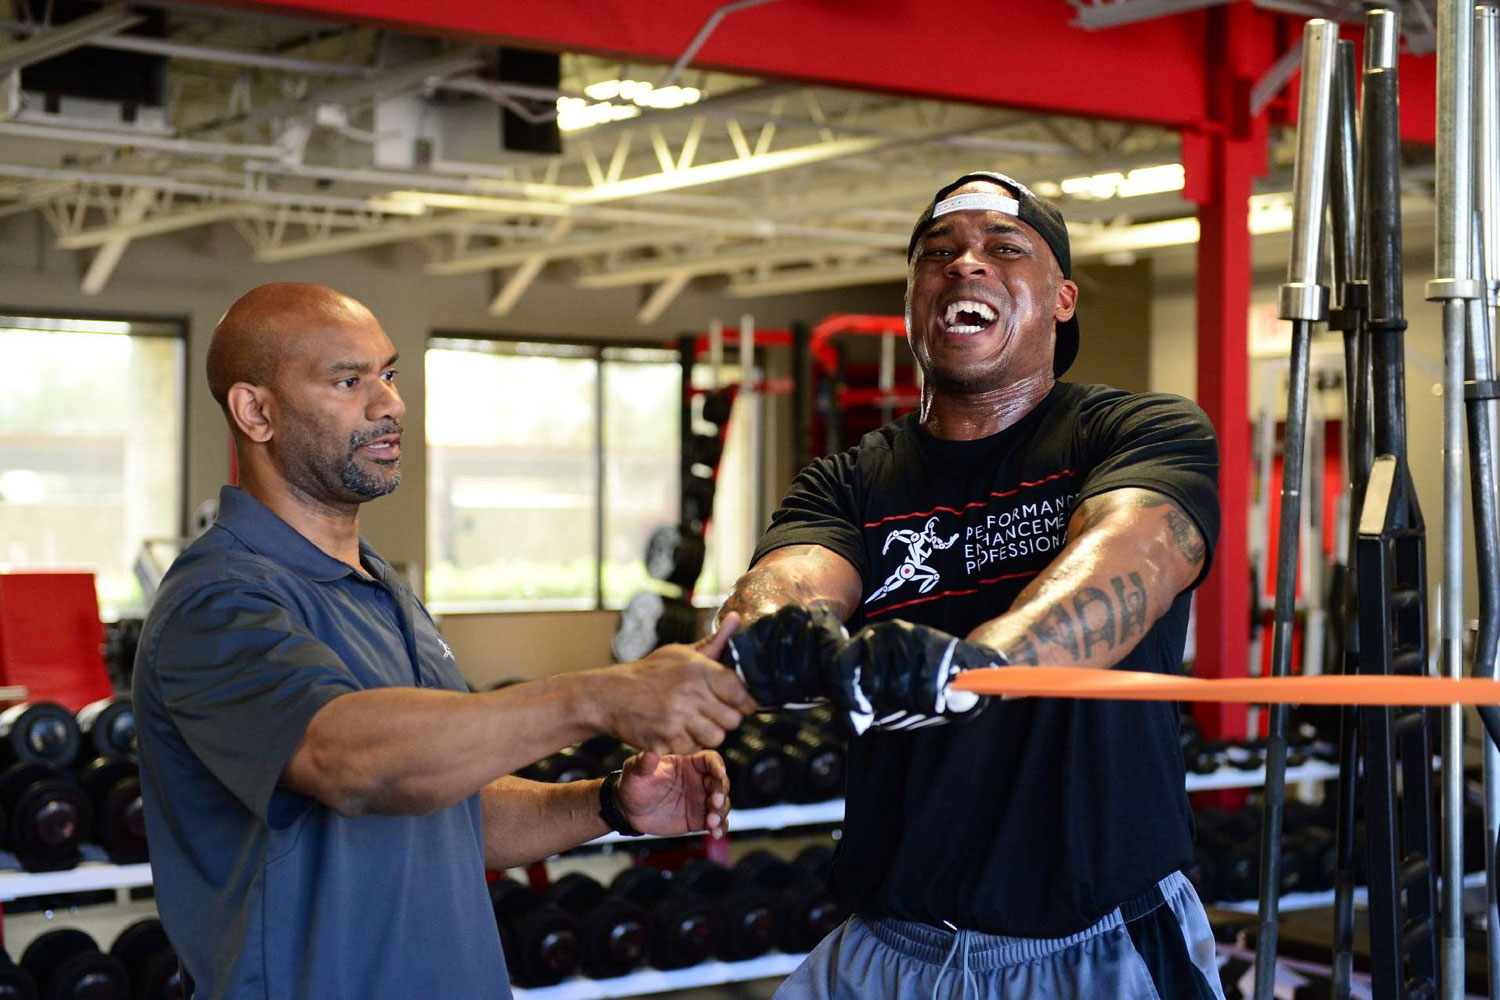 Green Bay Packers tight end Jermichael Finley working out his biceps at the Performance Enhancement Professionals complex in Scottsdale, AZ in February 2014.